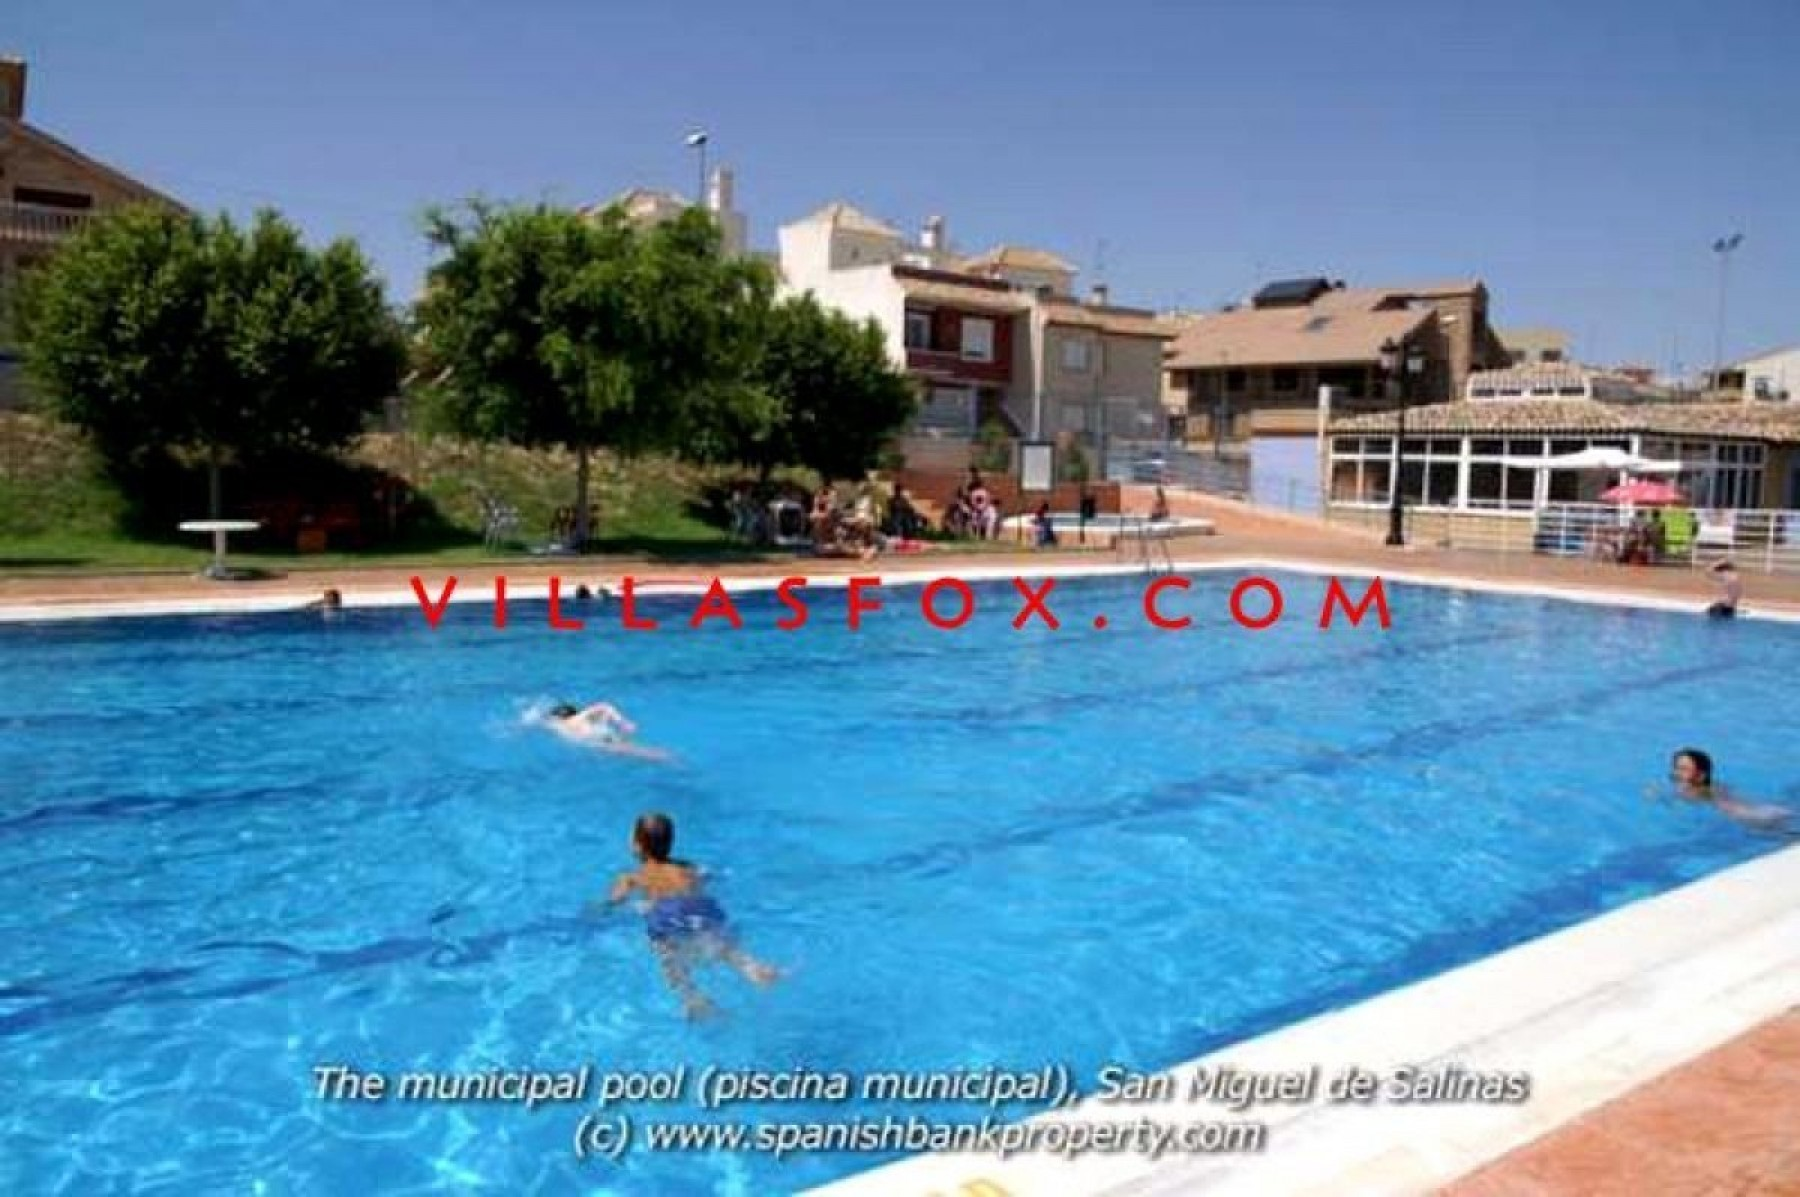 San Miguel de Salinas modern luxury apartment (3 bedrooms, private solarium)